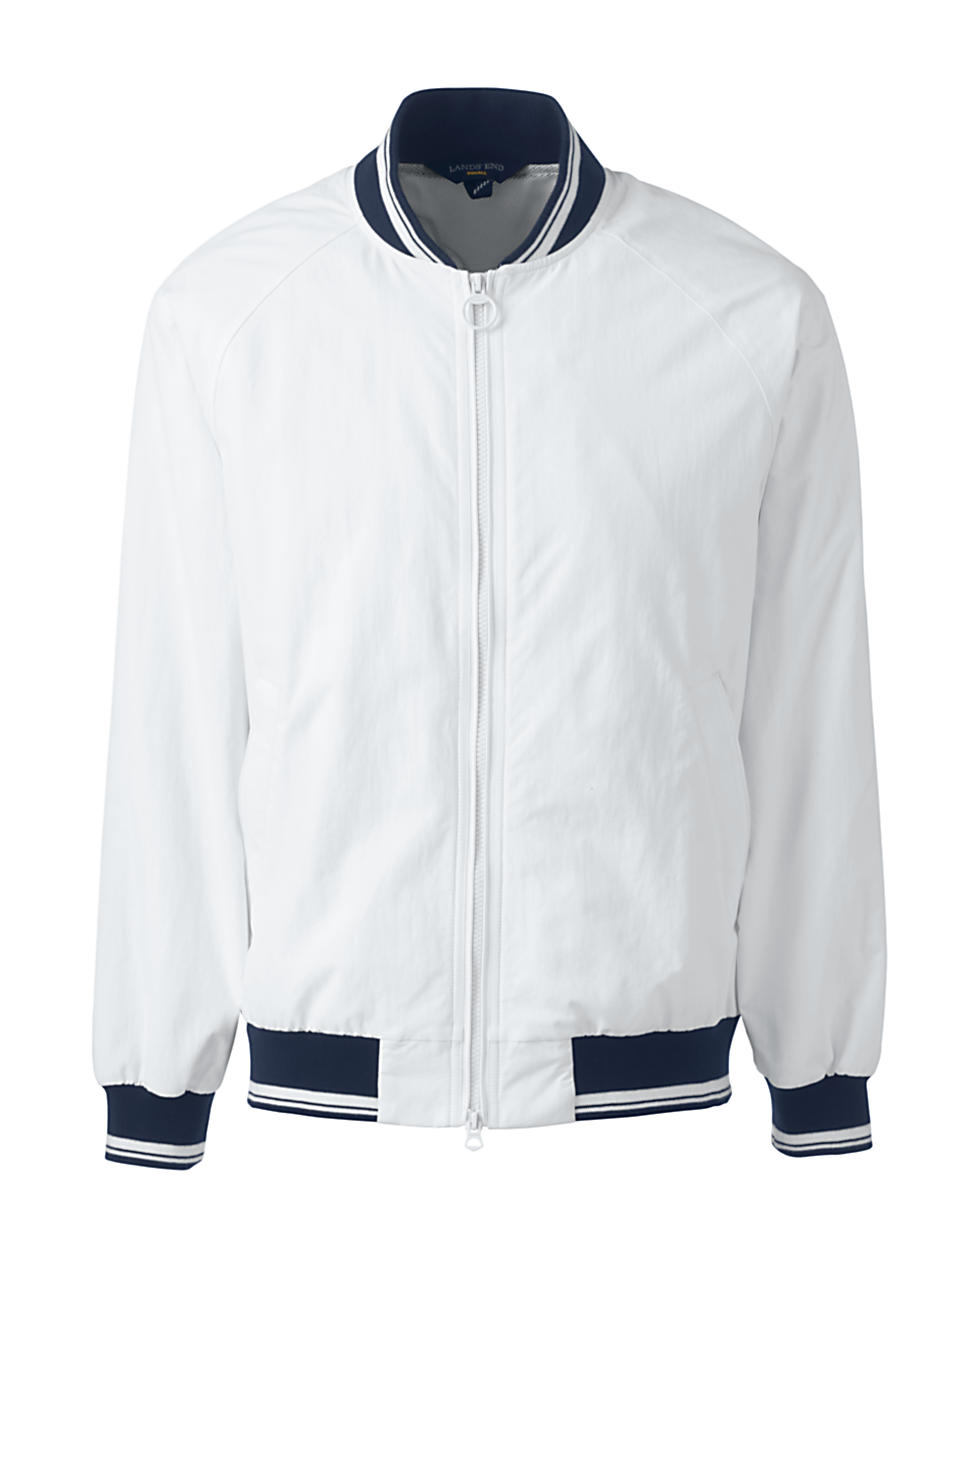 Lands' End Men's Squall Varsity Jacket